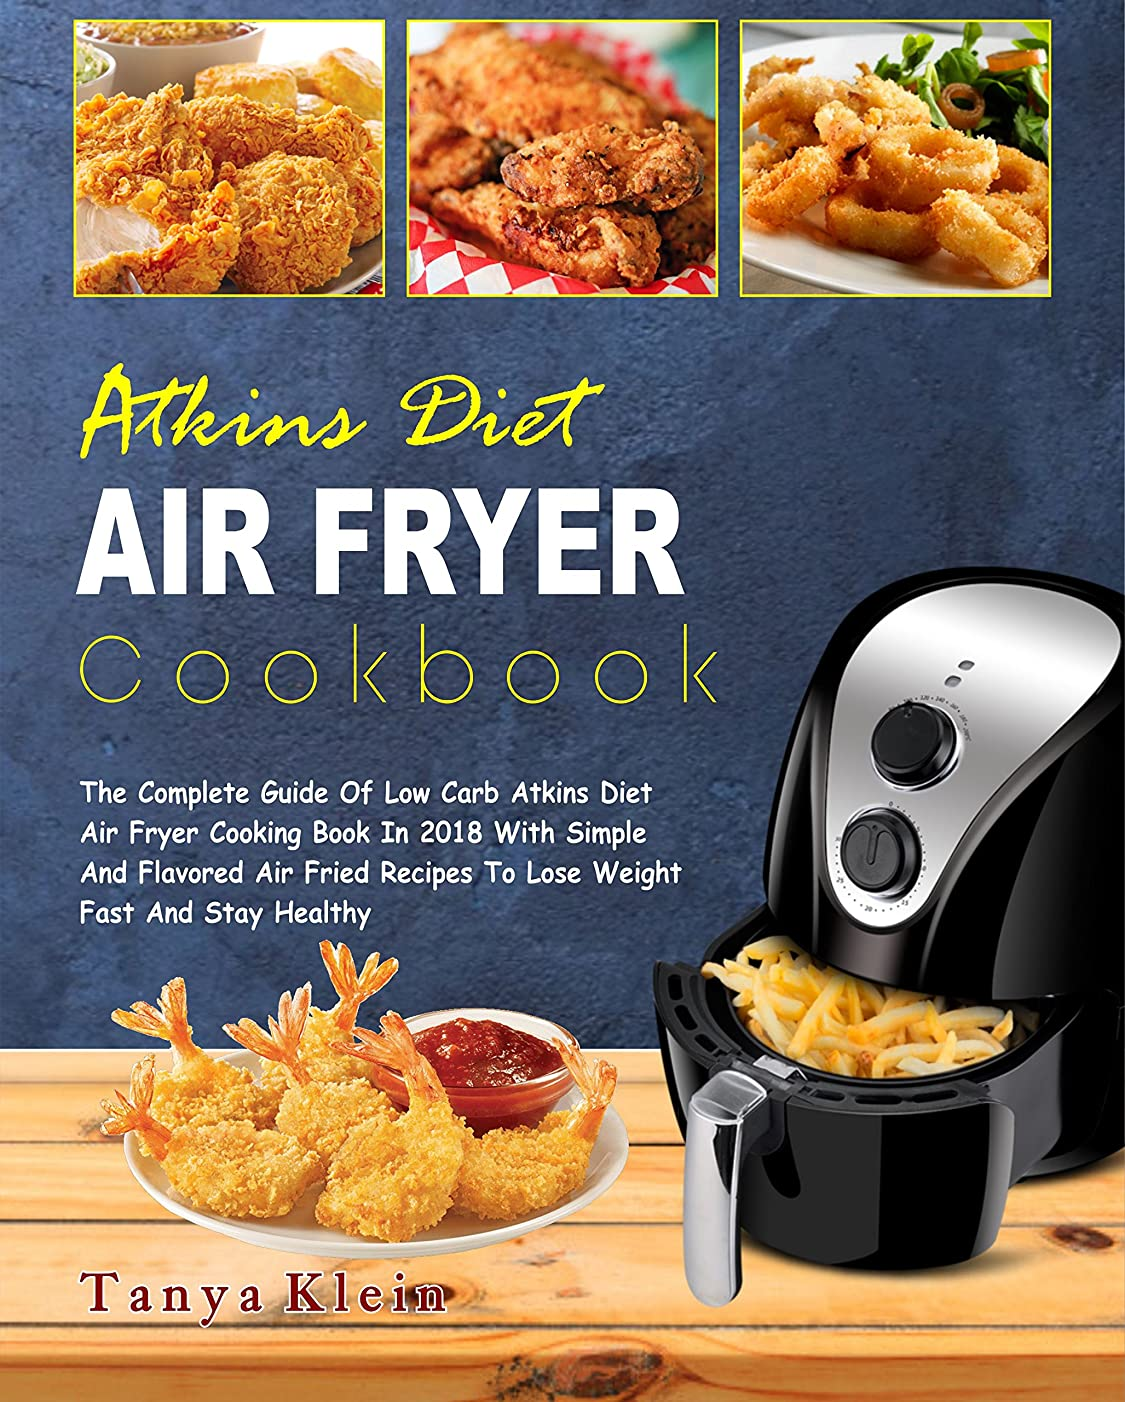 Atkins Diet Air Fryer Cookbook: The Complete Guide of Low Carb Atkins Diet Air Fryer Cooking Book In 2018 With Simple And Flavored Air Fried Recipes To ... Fast And Stay Healthy (English Edition)